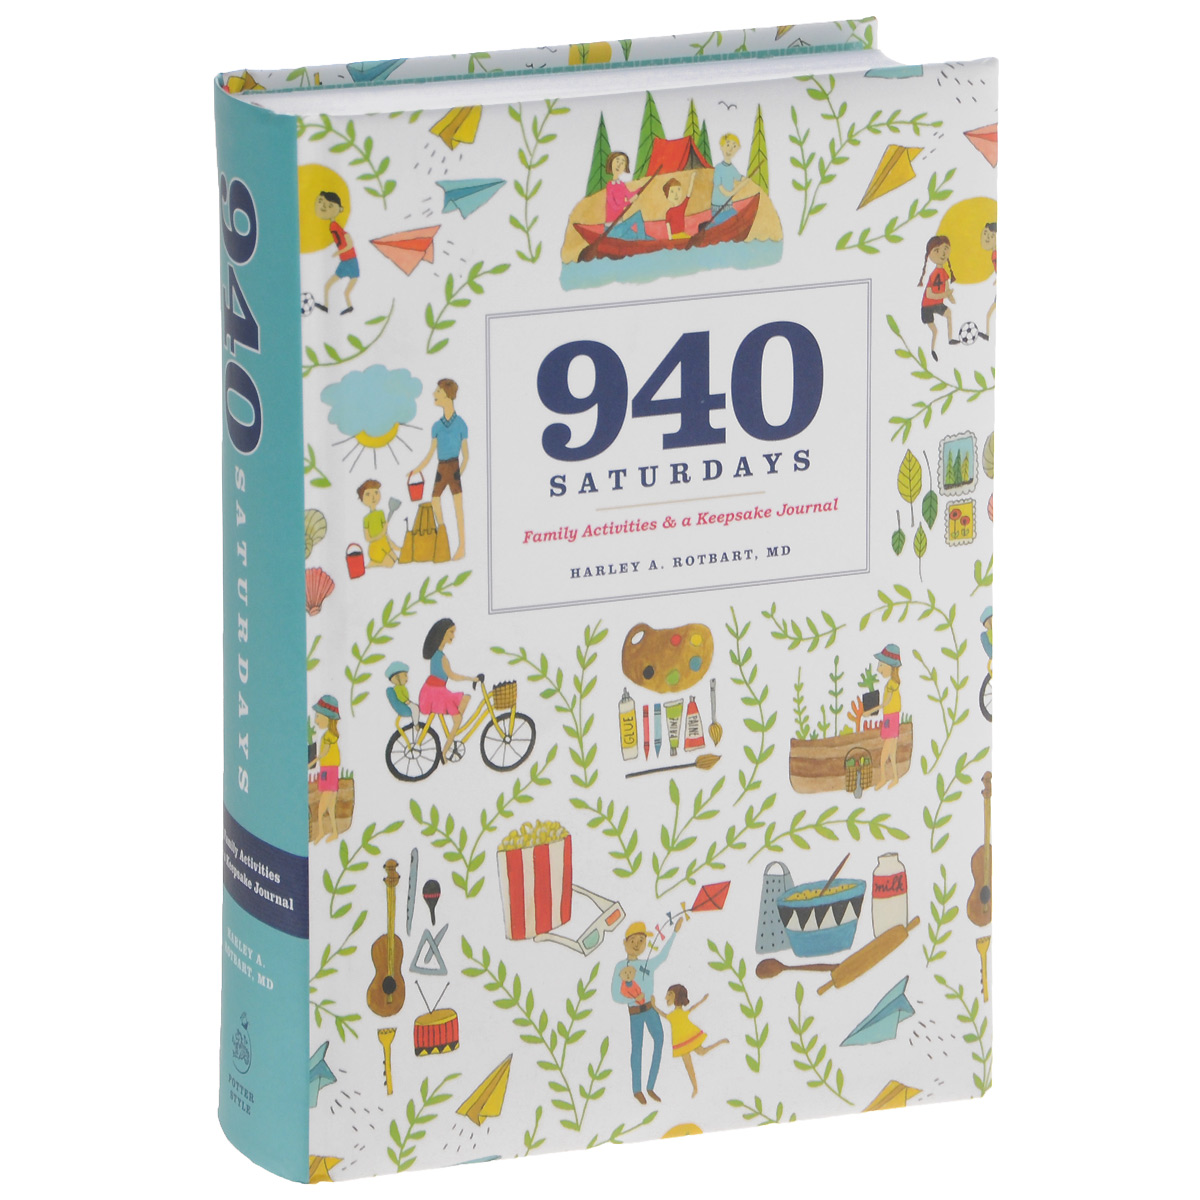 940 Saturdays: Family Activities & a Keepsake Journal memories and adventures